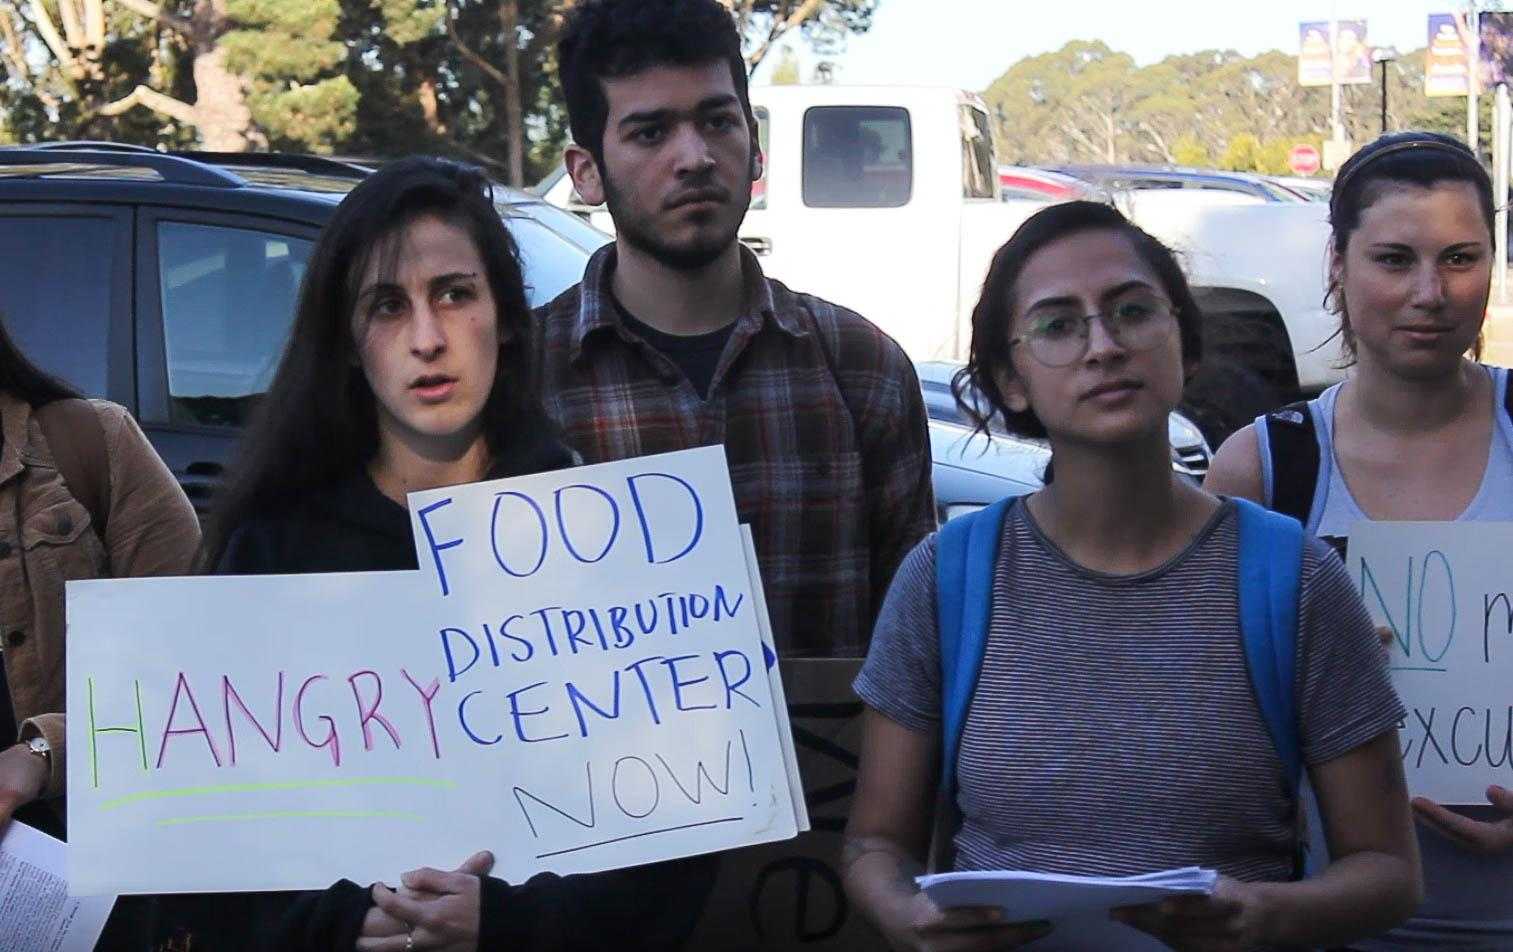 Students protest the food insecurity issue